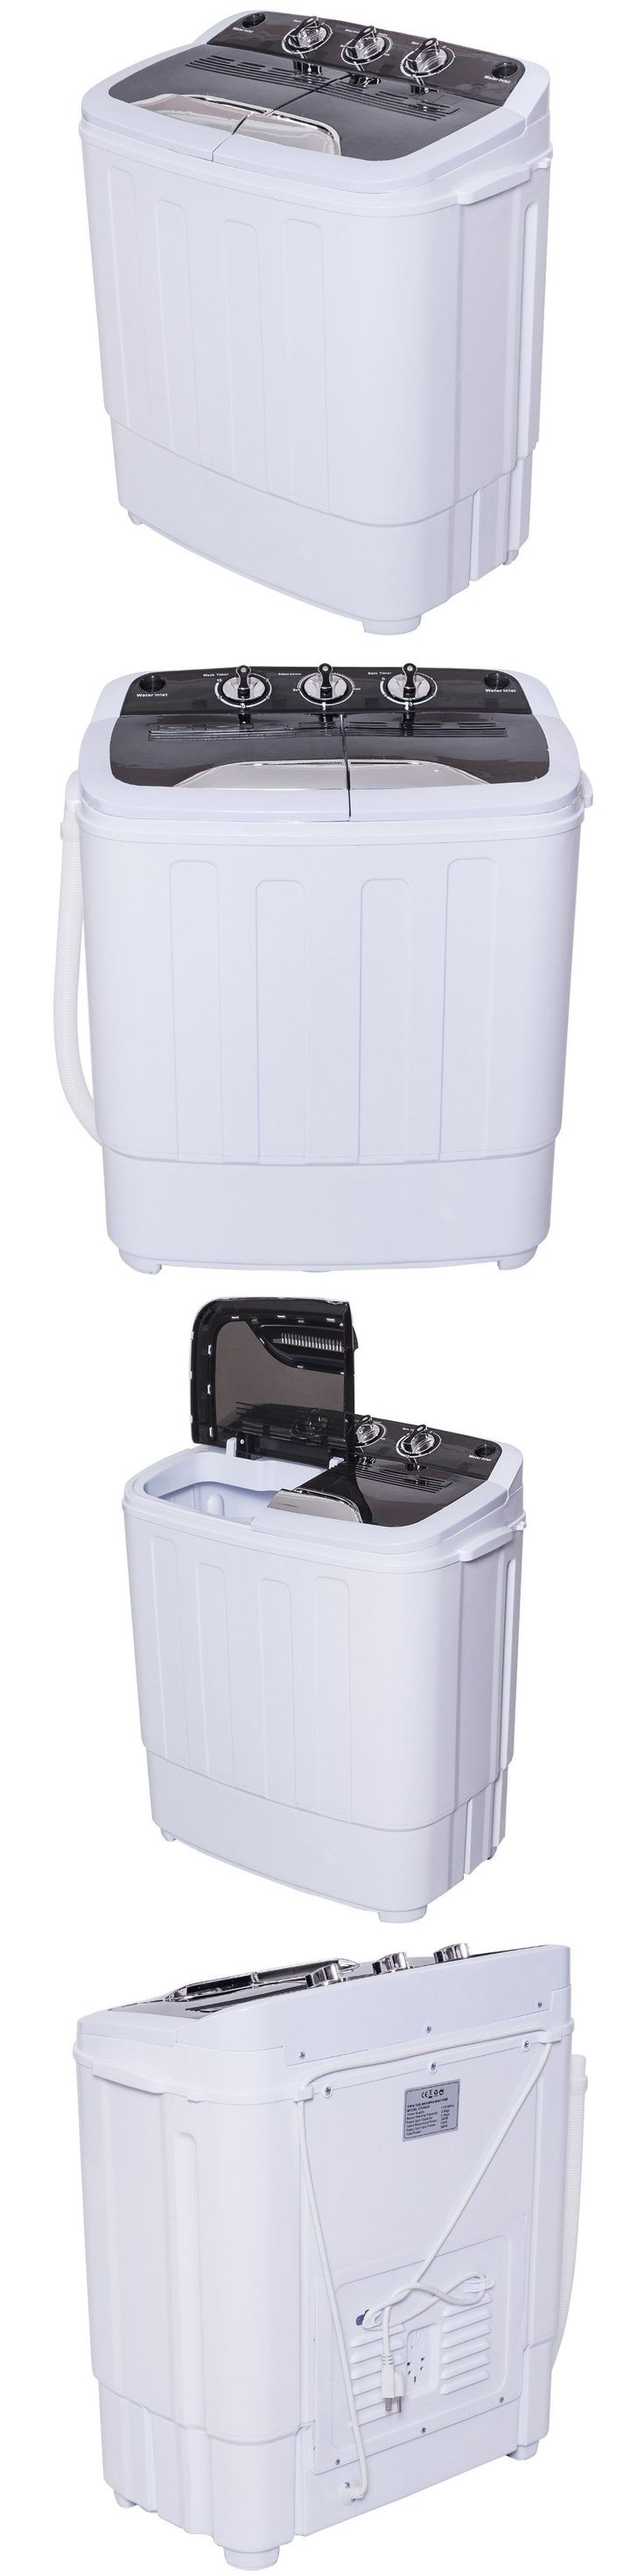 washing machines apartment size washer spin dryer clothes rv boat machine electric portable 110v